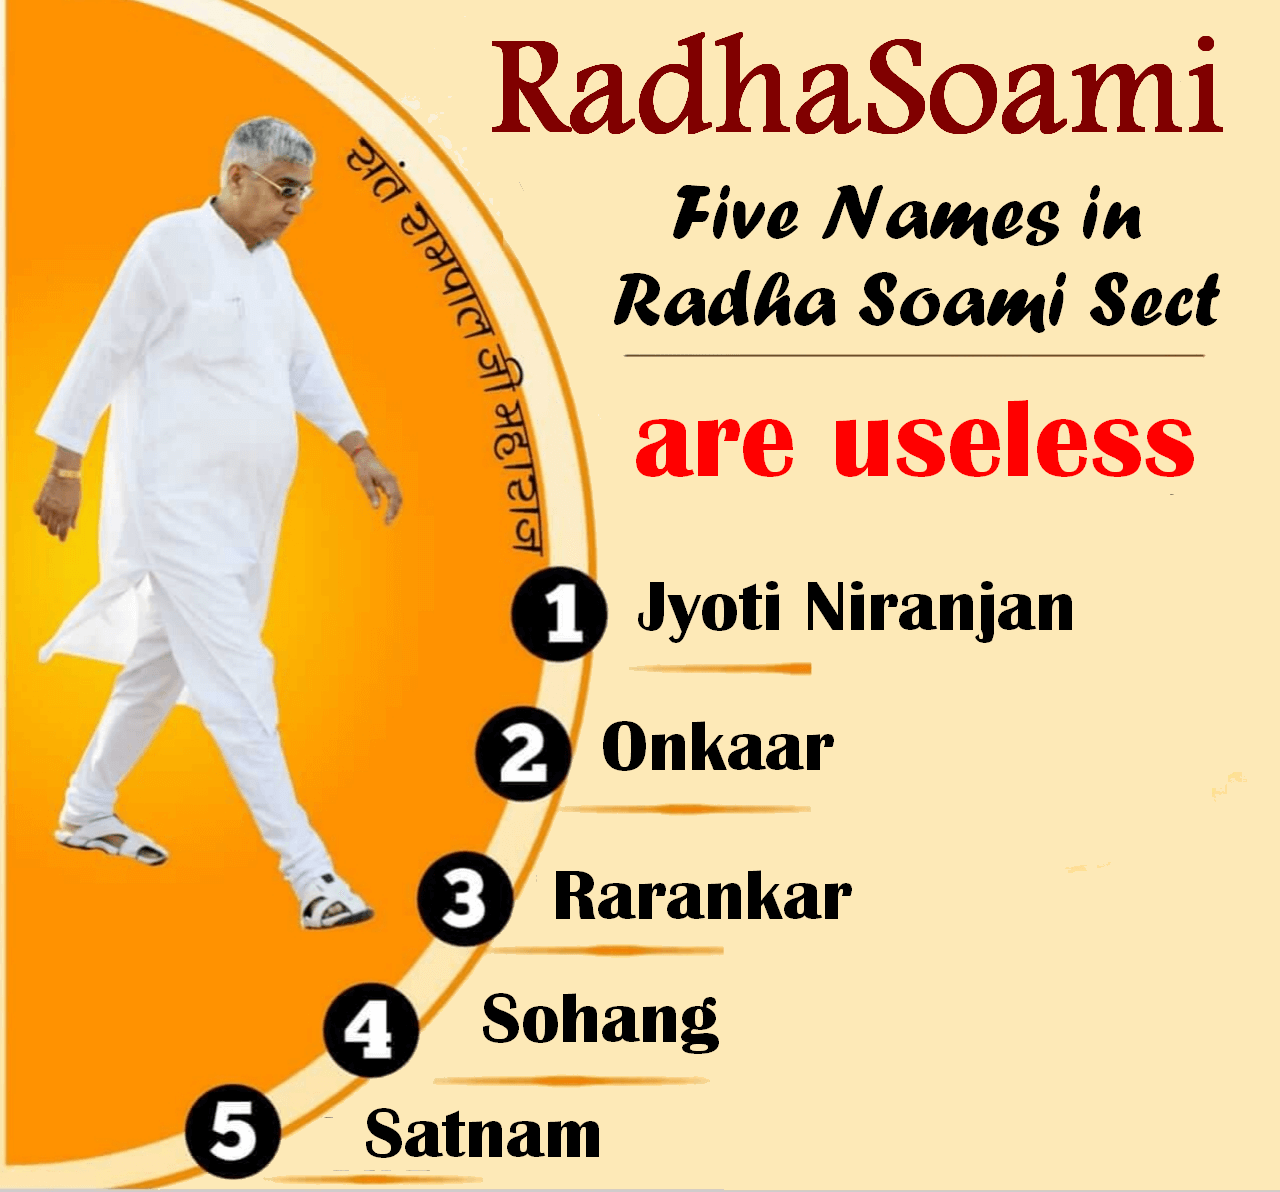 Panch Naam in Radhasoami